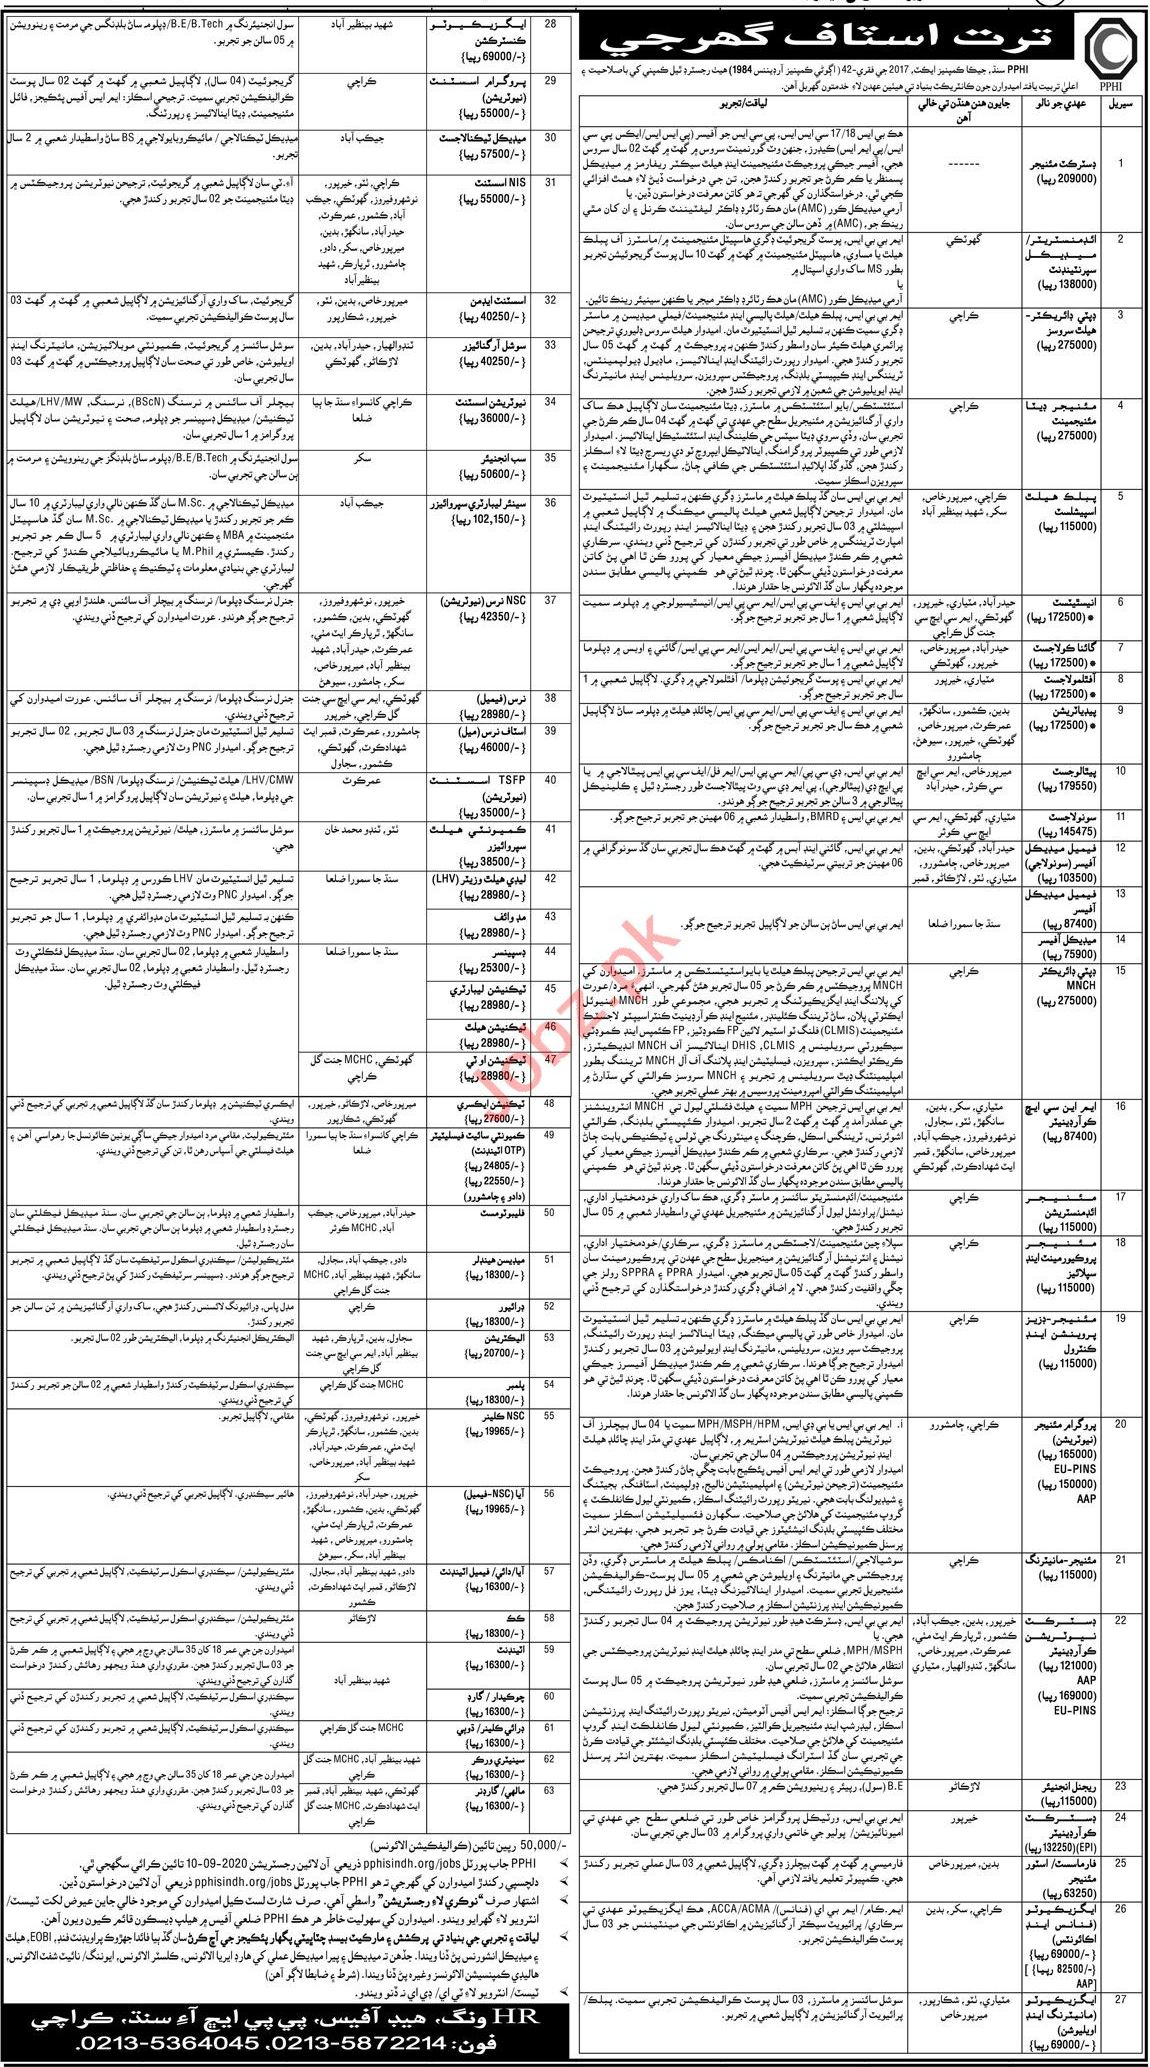 PPHI Sindh Jobs 2020 for Medical Officer & Technicians